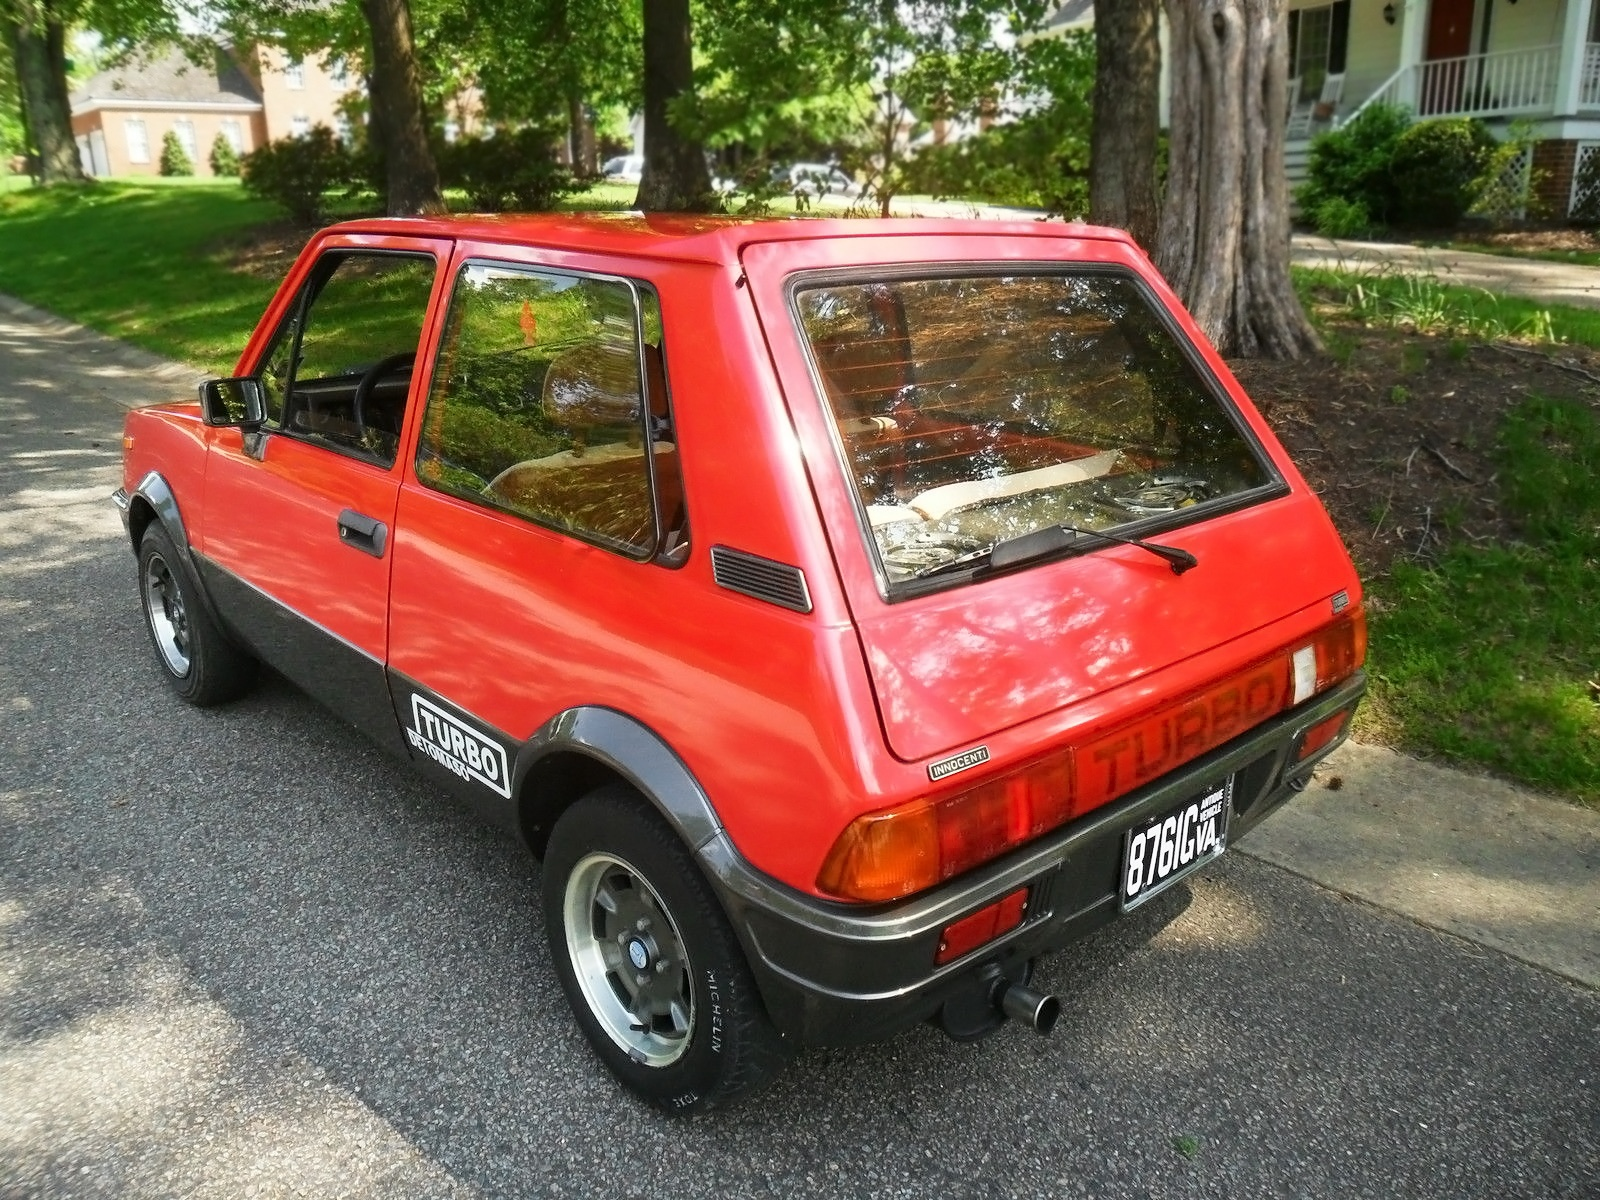 Innocenti turbo